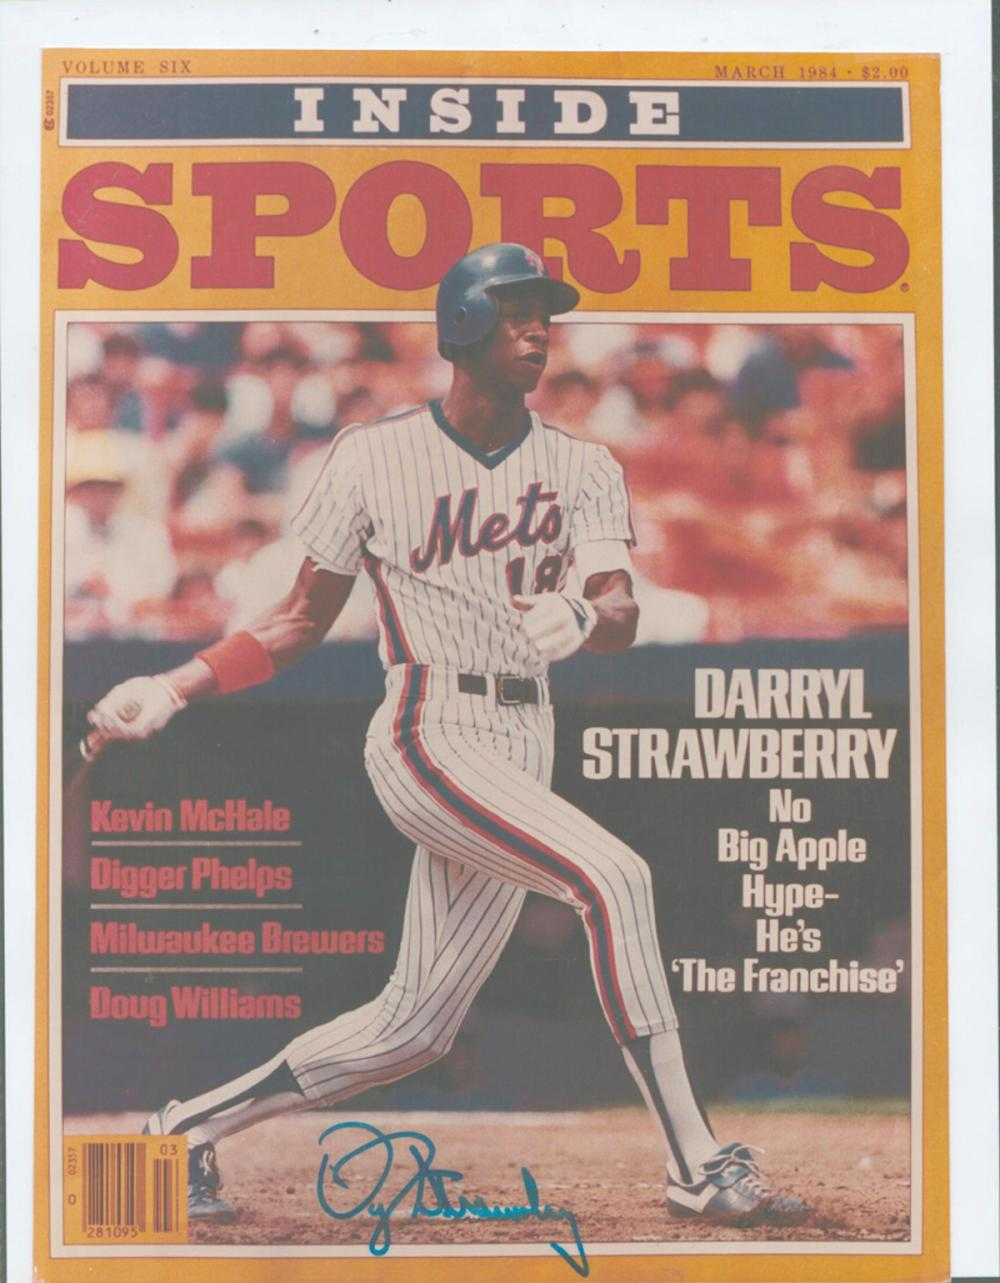 Darryl Strawberry Signed Inside Sports Magazine Cover W Coa Sports Magazine Covers Sports Magazine Magazine Cover